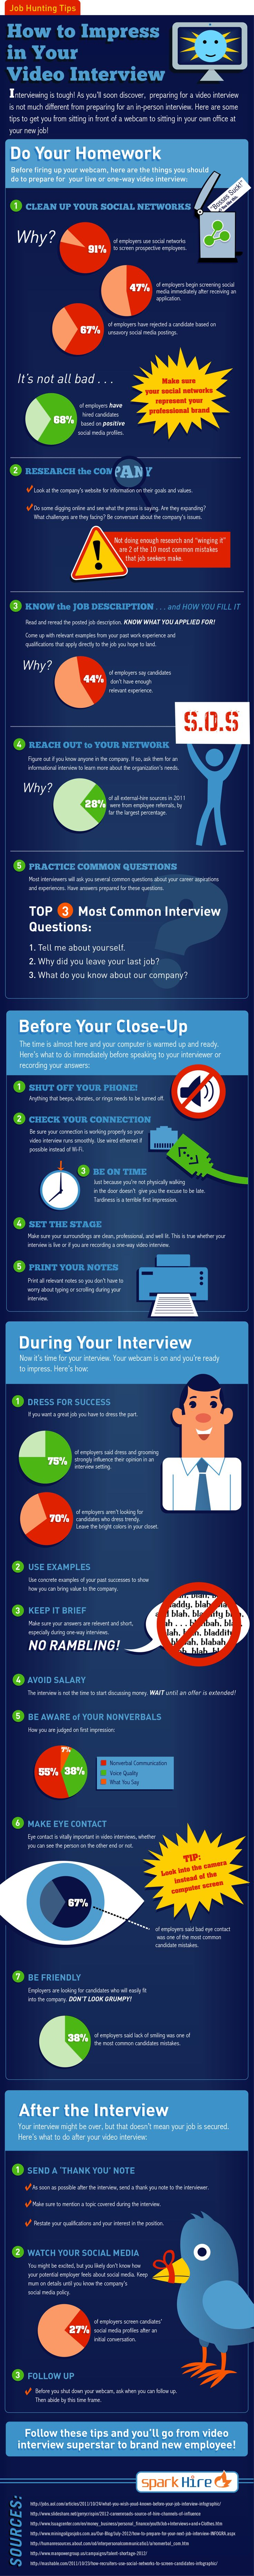 best ideas about interviewing tips interview 17 best ideas about interviewing tips interview questions job interview tips and interview